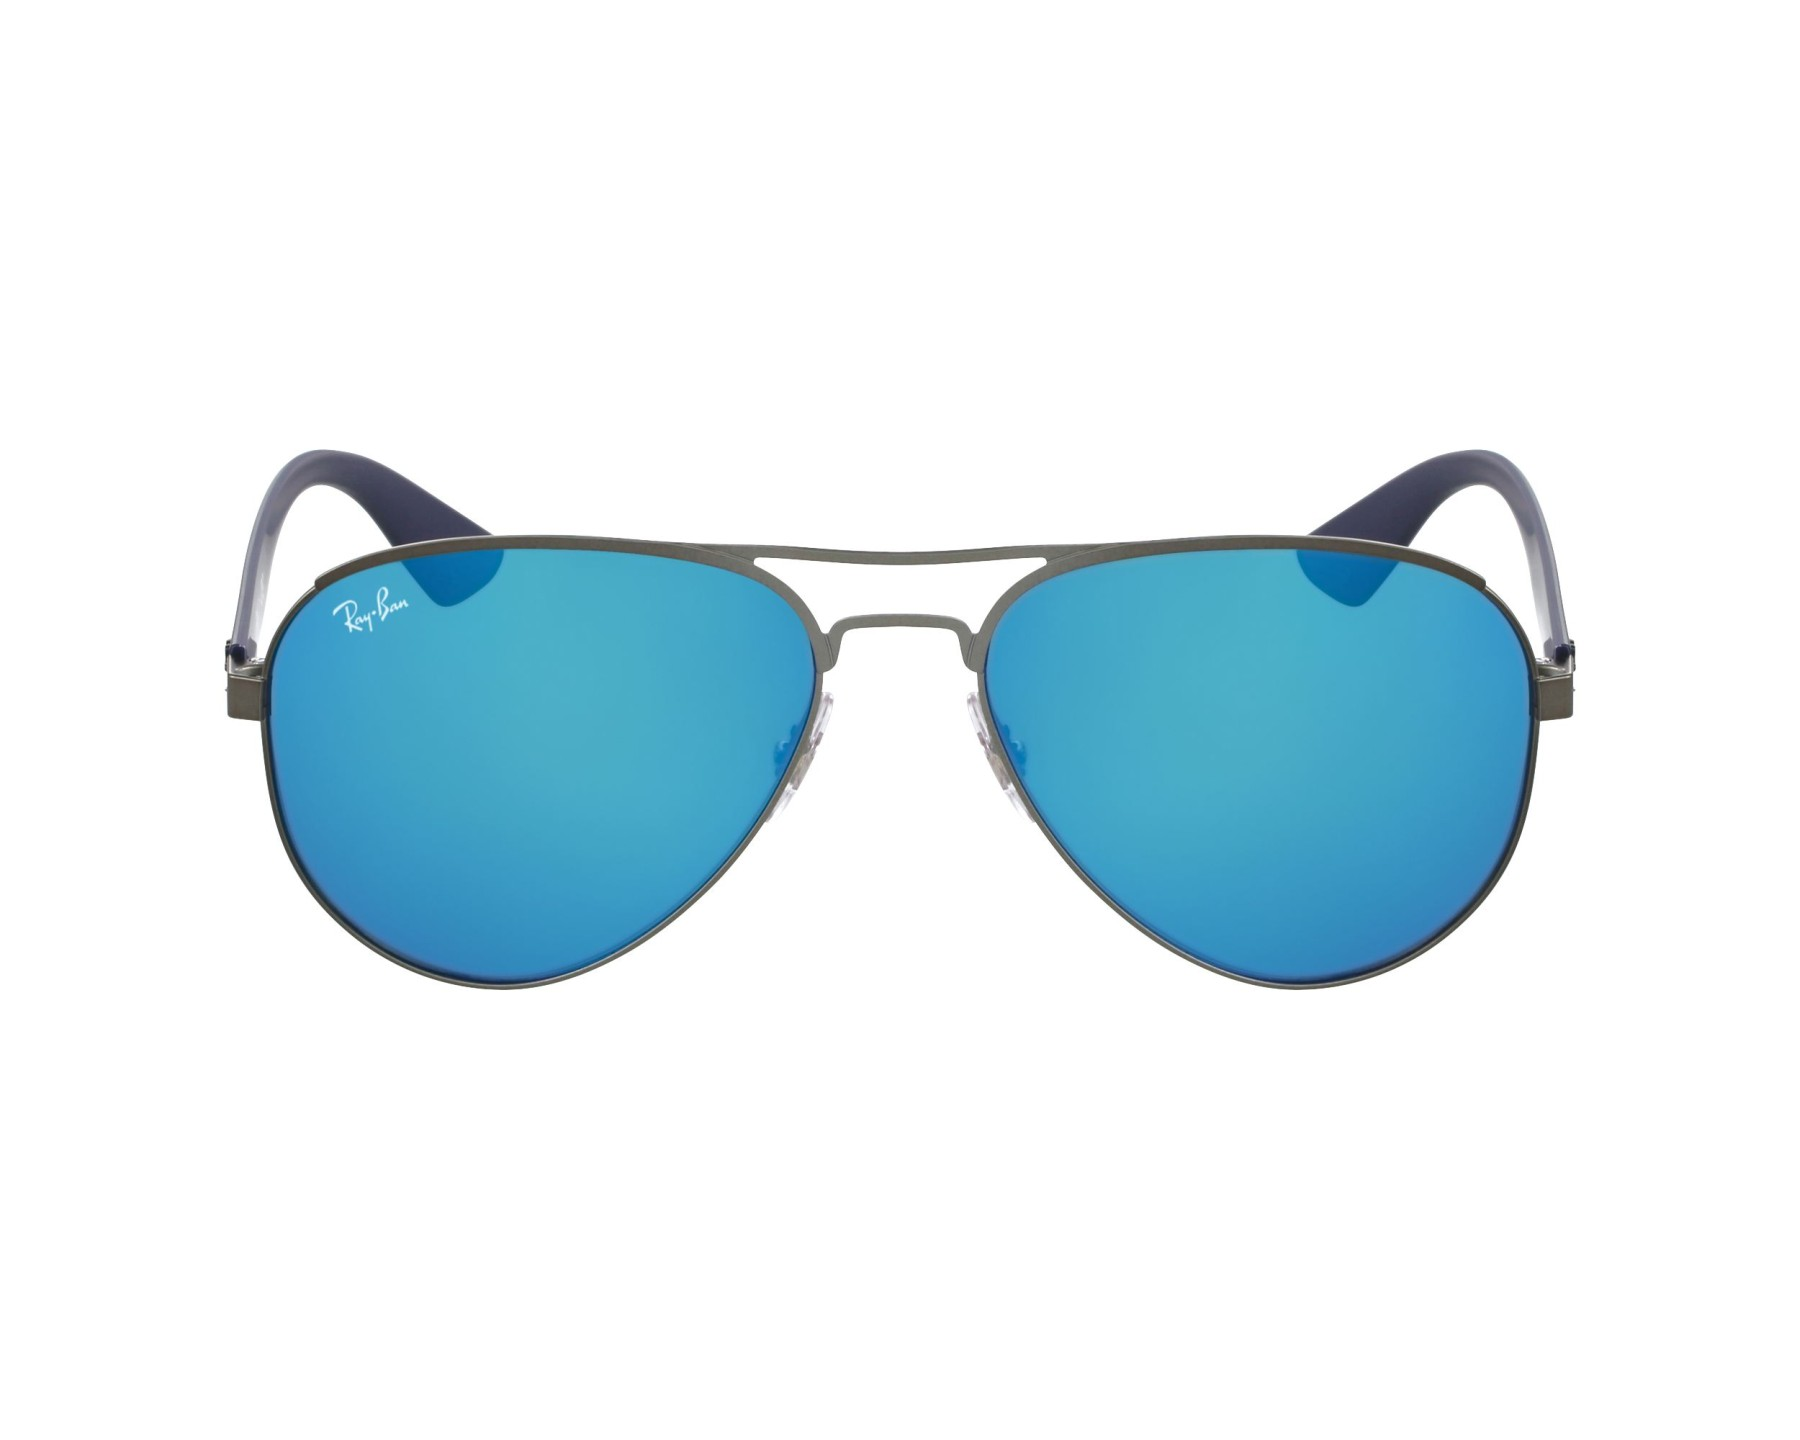 abf6a3d404 Sunglasses Ray-Ban RB-3523 029 55 59-17 Gun Blue profile